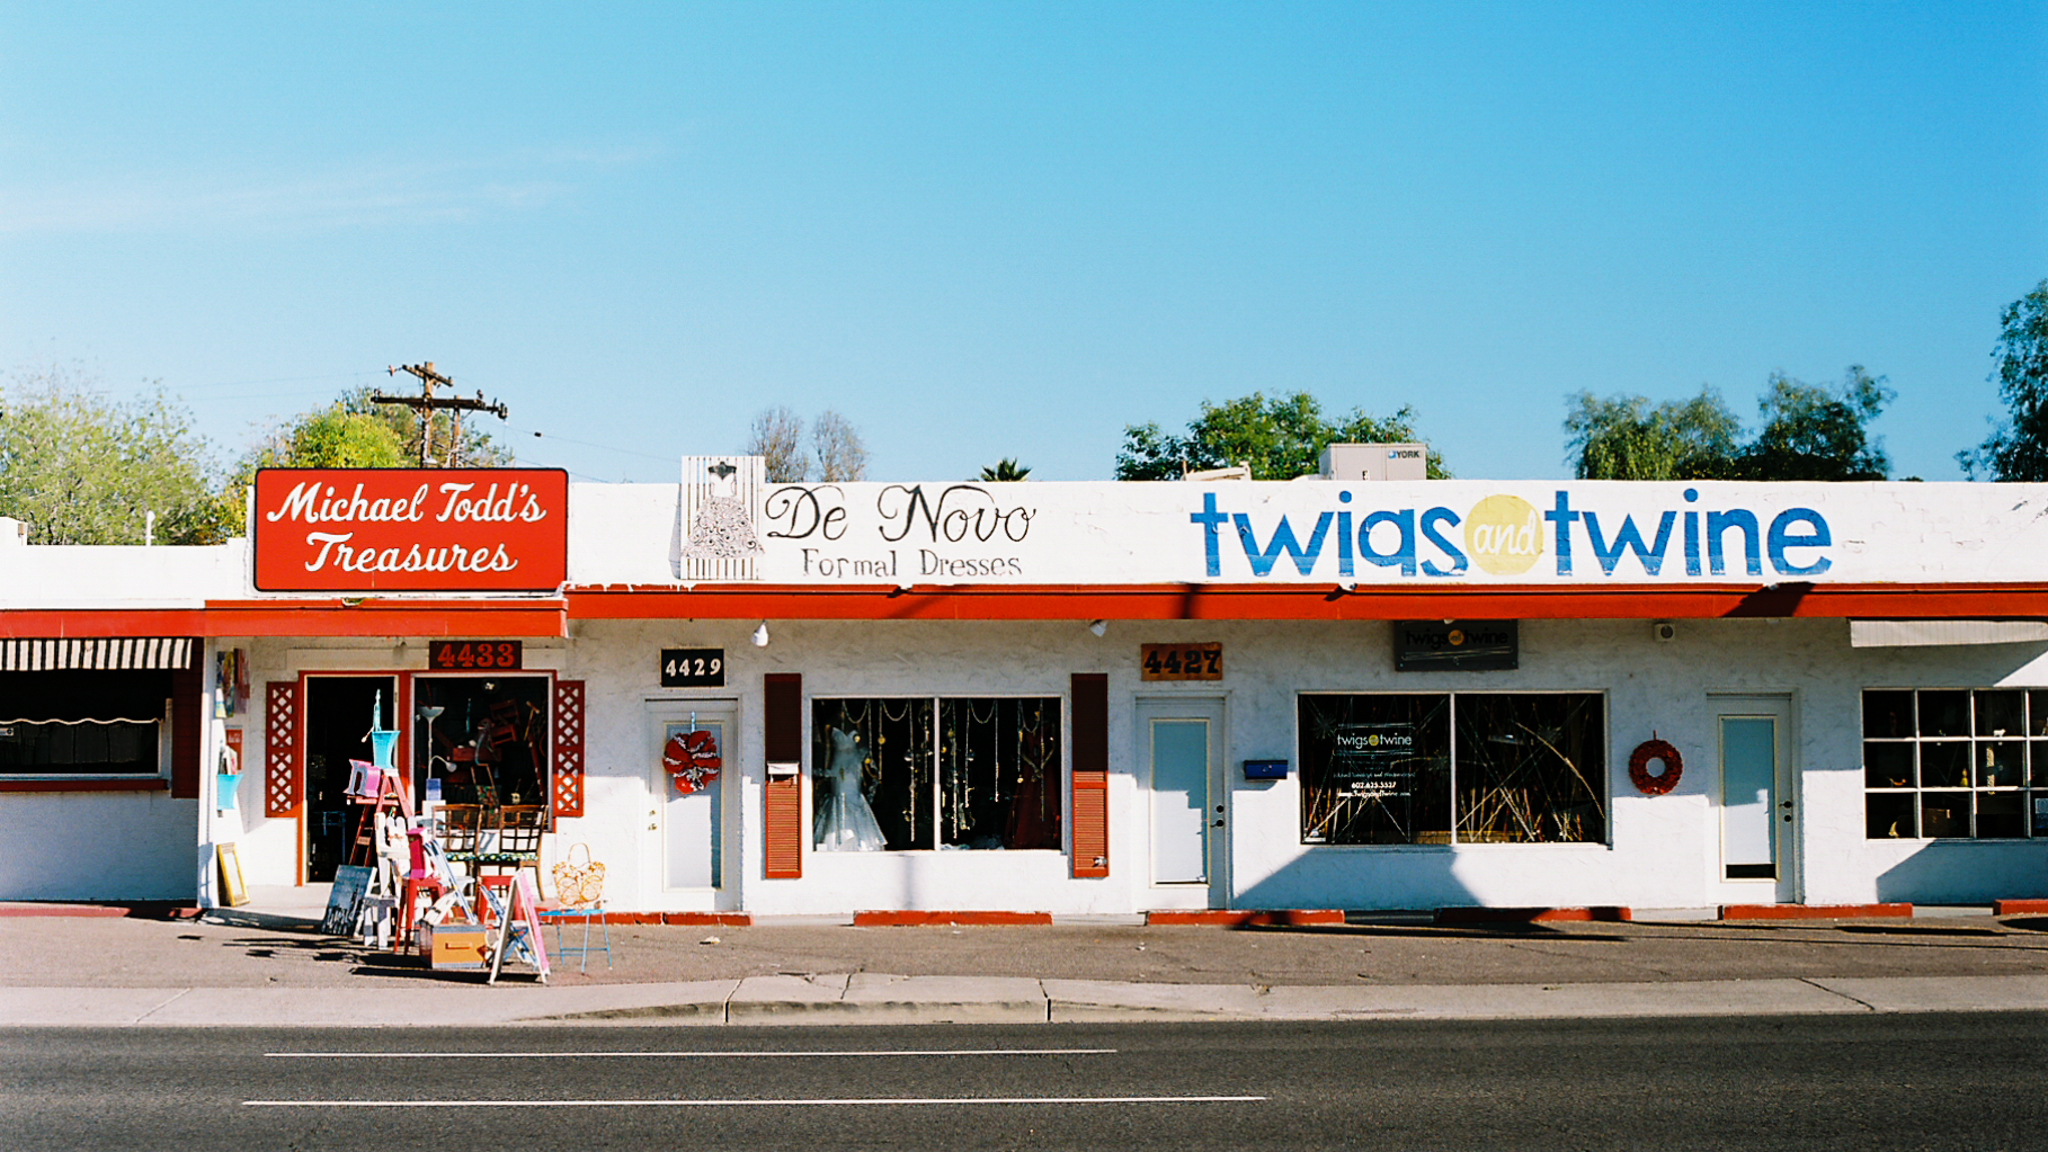 Twigs and Twine, Melrose, Phoenix, December 2018.